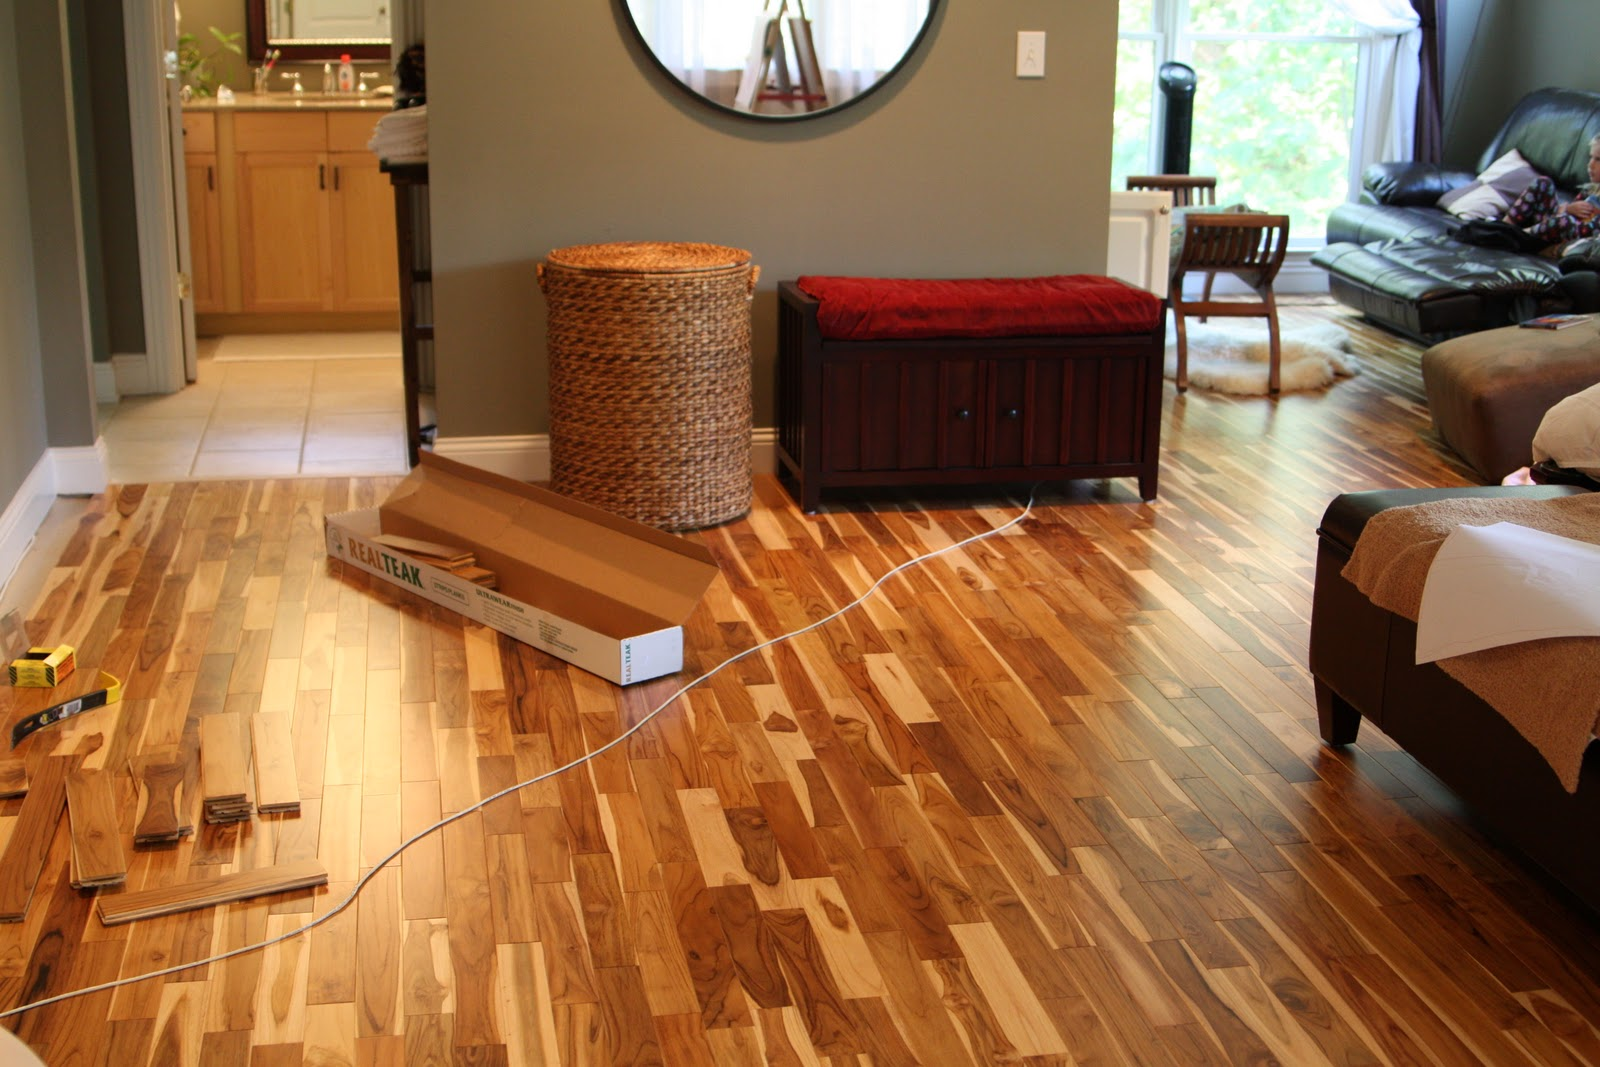 Master bedroom hardwood flooring is nearly finished for Bedroom flooring